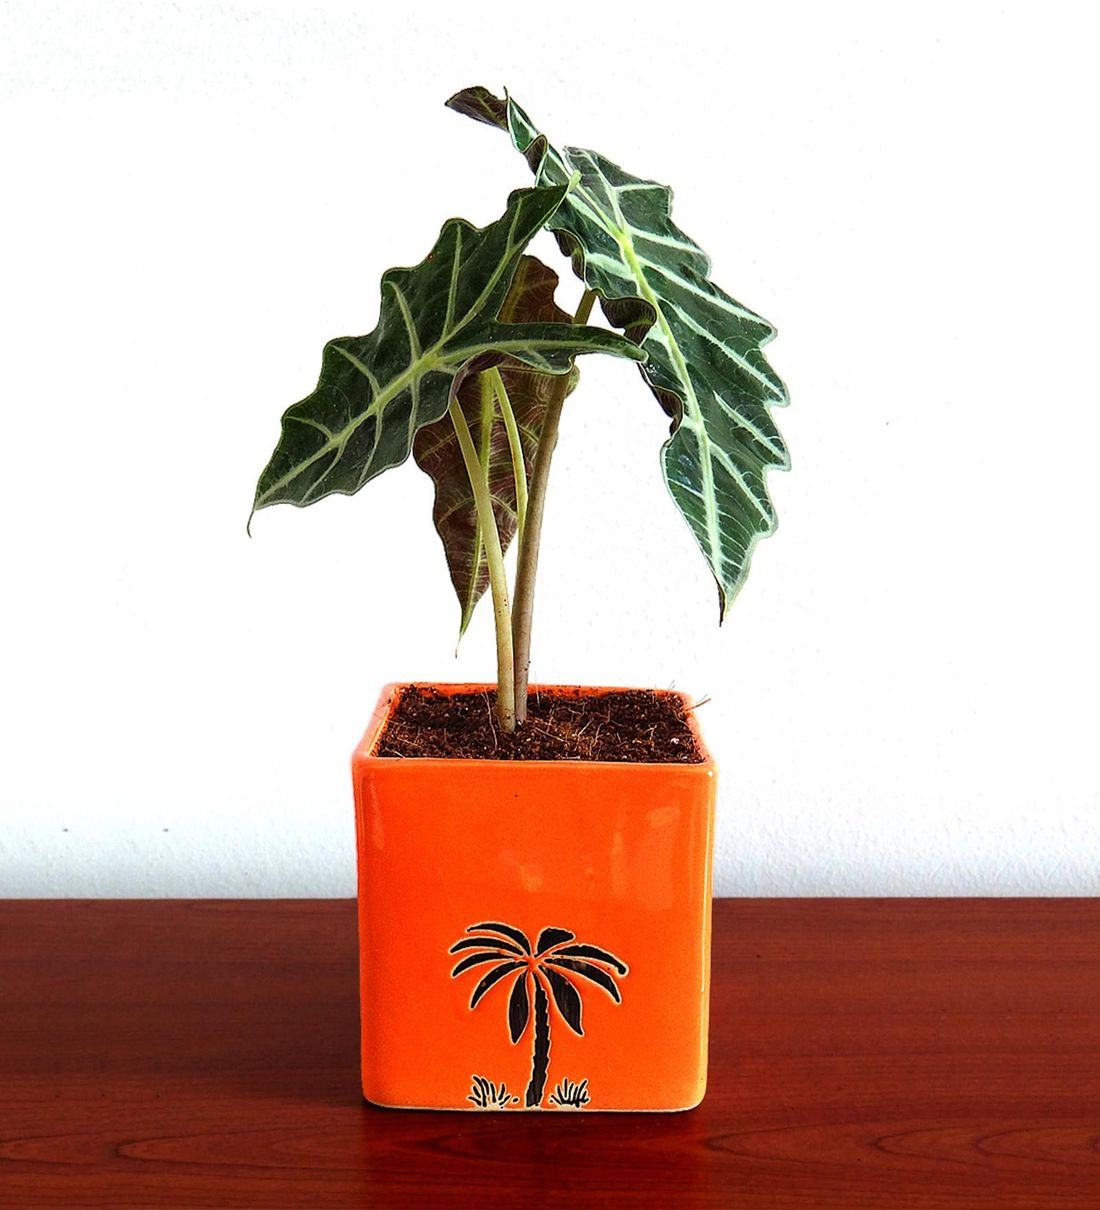 Buy Natural Alocasia Elephant Ear Plant In Orange Cube Aroez Ceramic Pot By Rolling Nature Online Foliage Plants Natural Plants Home Decor Pepperfry Product